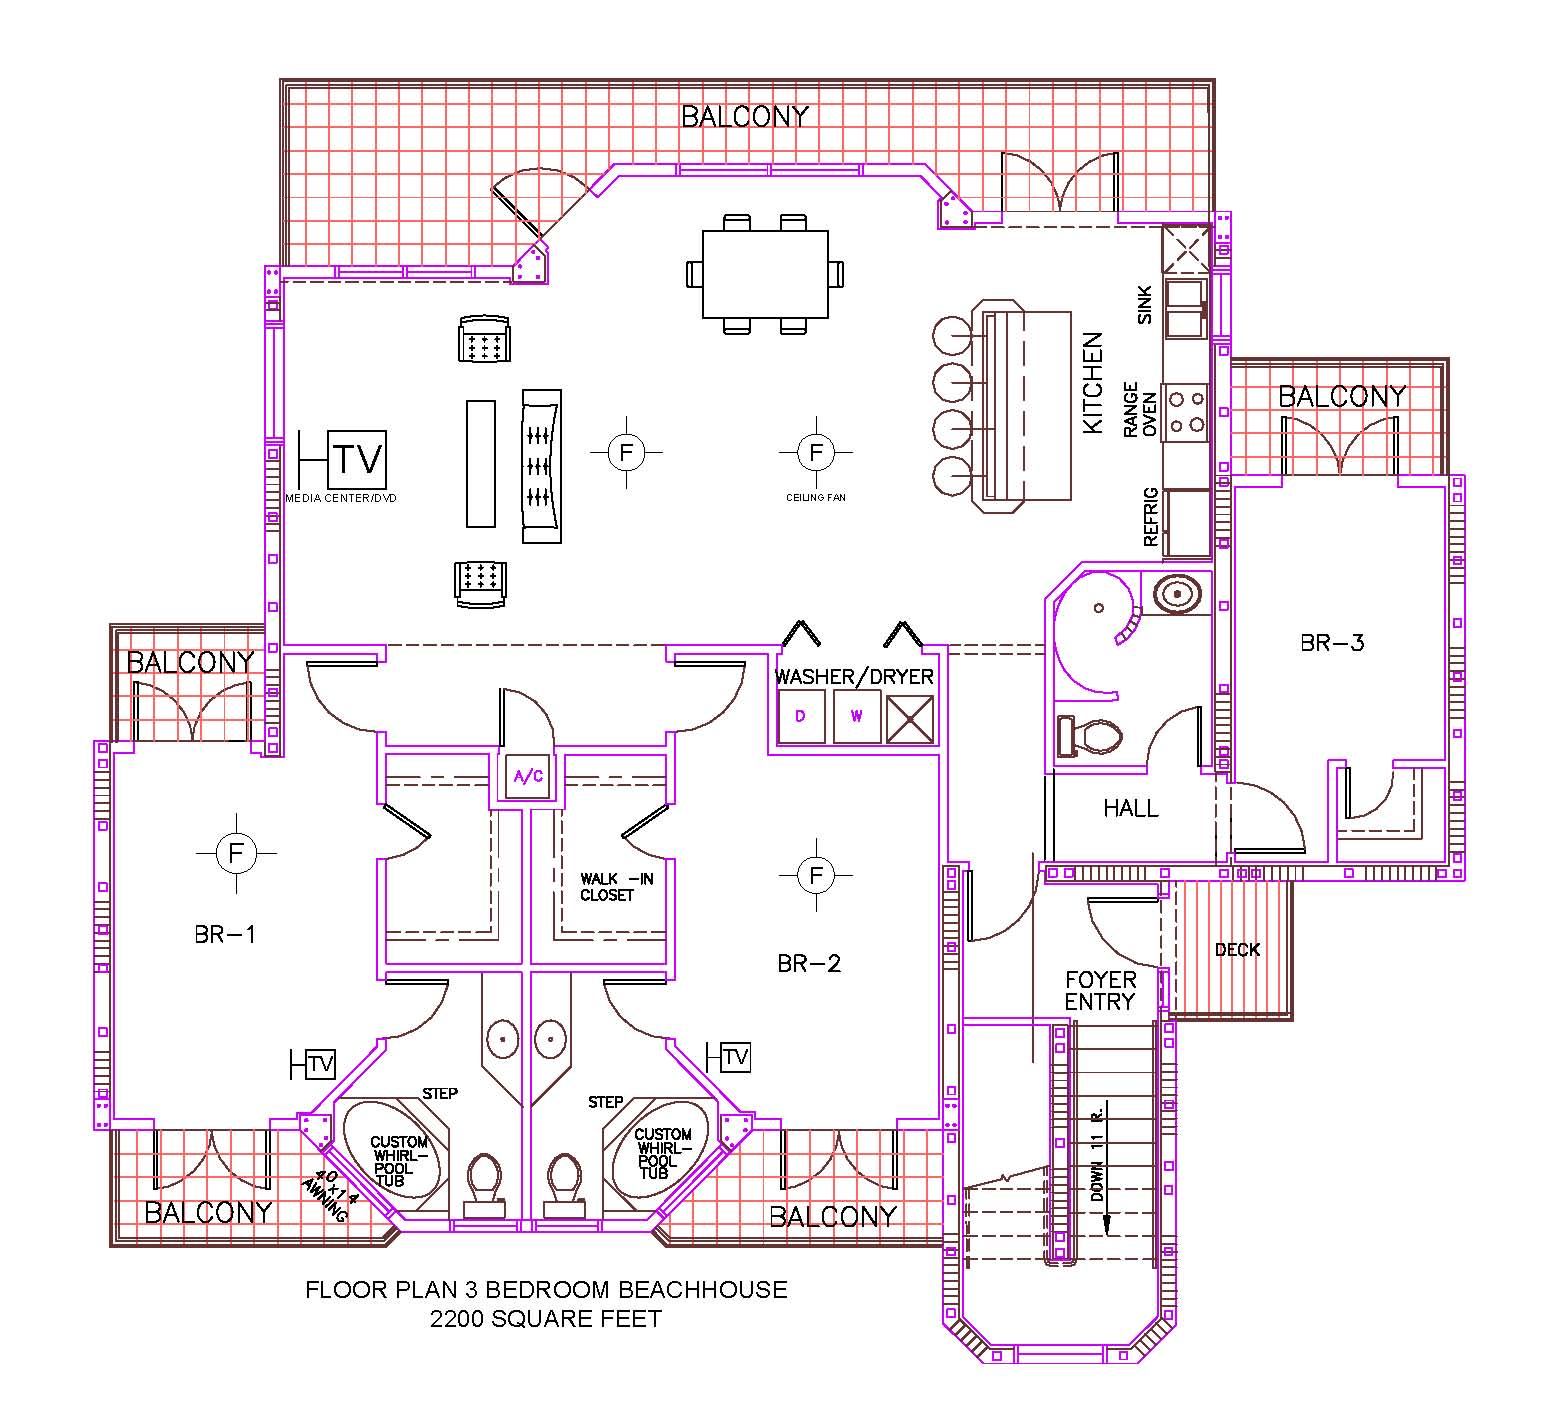 floor plan for pelican point st augustine fl For3 Bedroom Beach House Plans